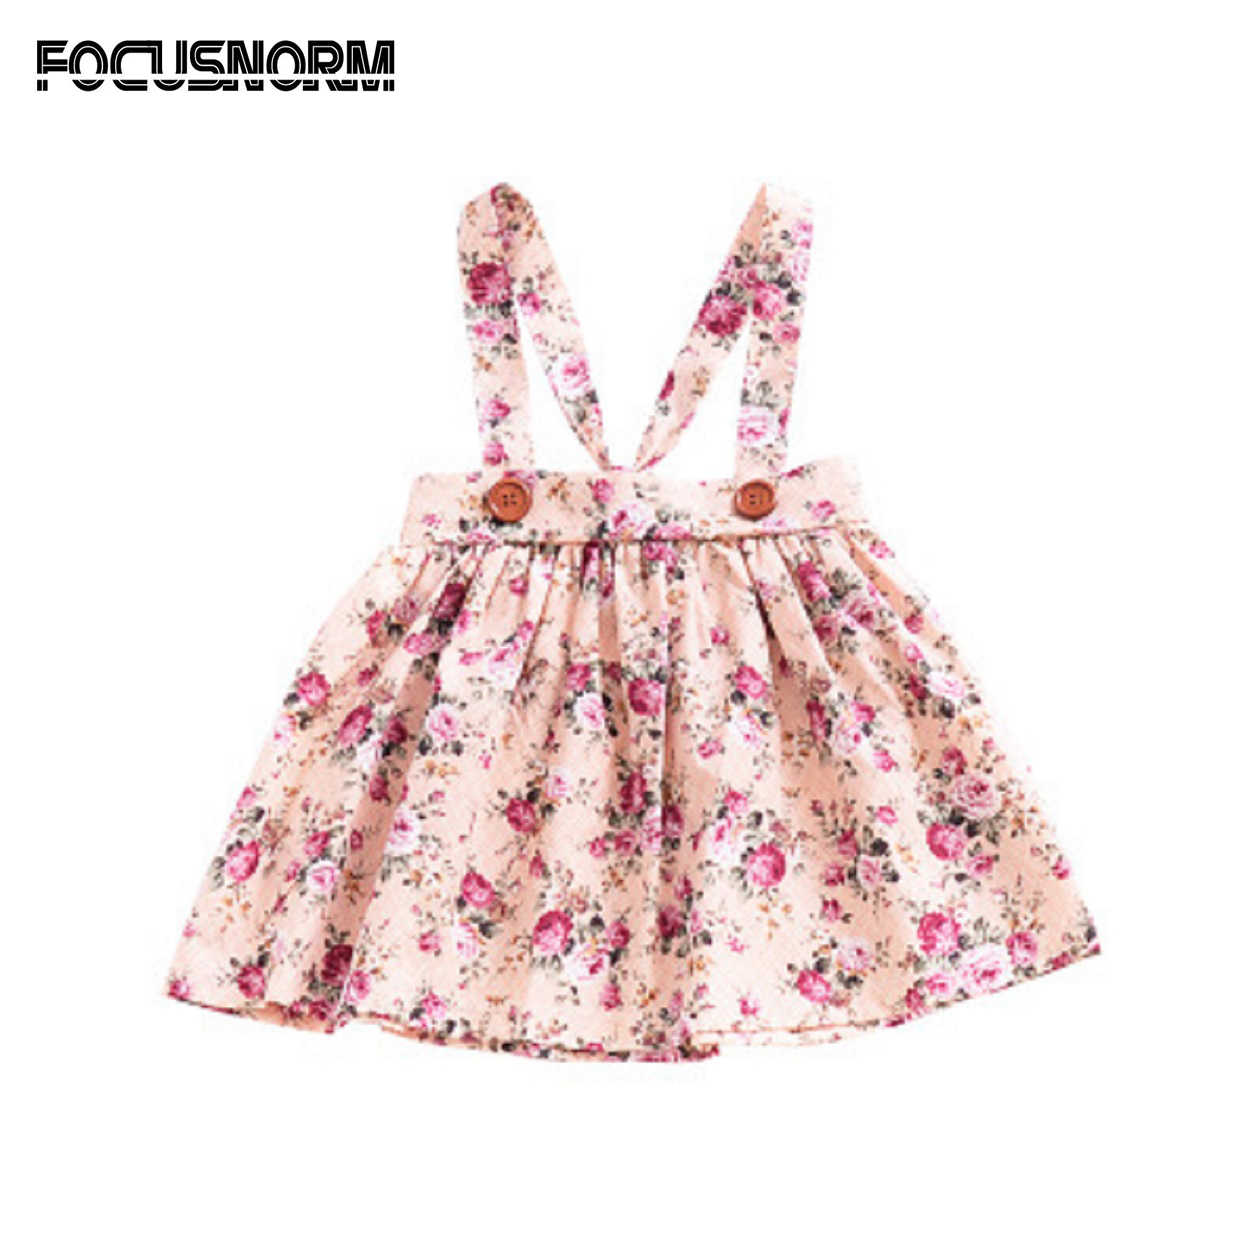 59a78e9bdfc0 Detail Feedback Questions about Sweet Newborn Kids Baby Girls Party ...